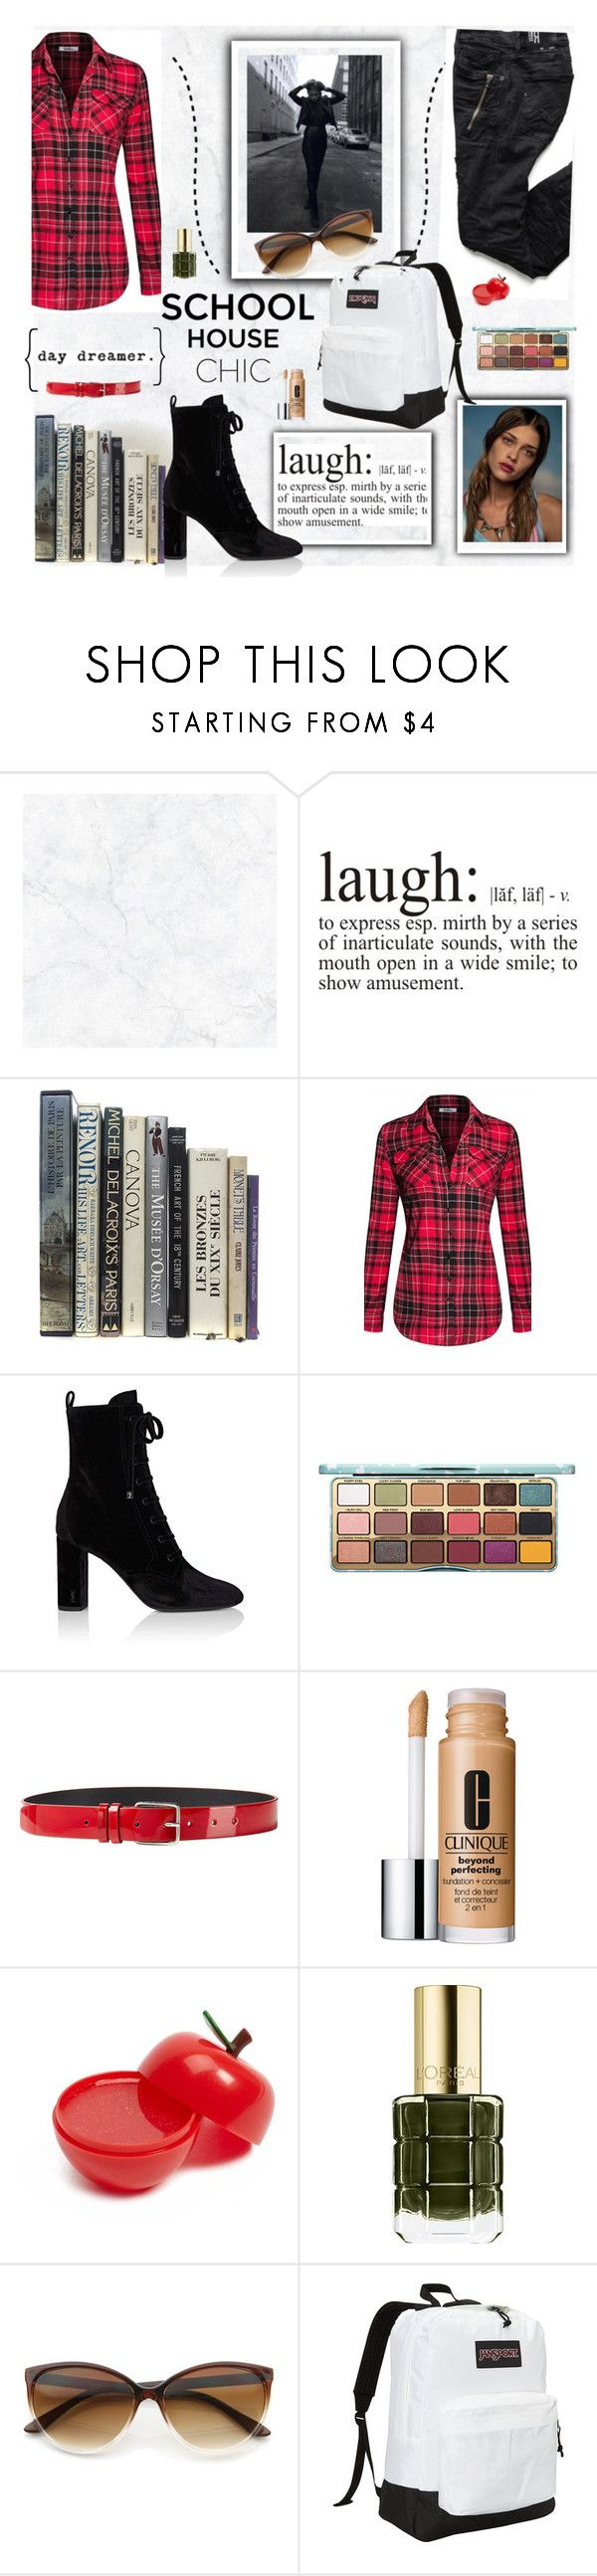 """""""School Of Life"""" by taste-for-life ❤ liked on Polyvore featuring Wall Pops!, WALL, Yves Saint Laurent, Jil Sander, Clinique, Forever 21, L'Oréal Paris, JanSport, contest and polyvorecommunity"""